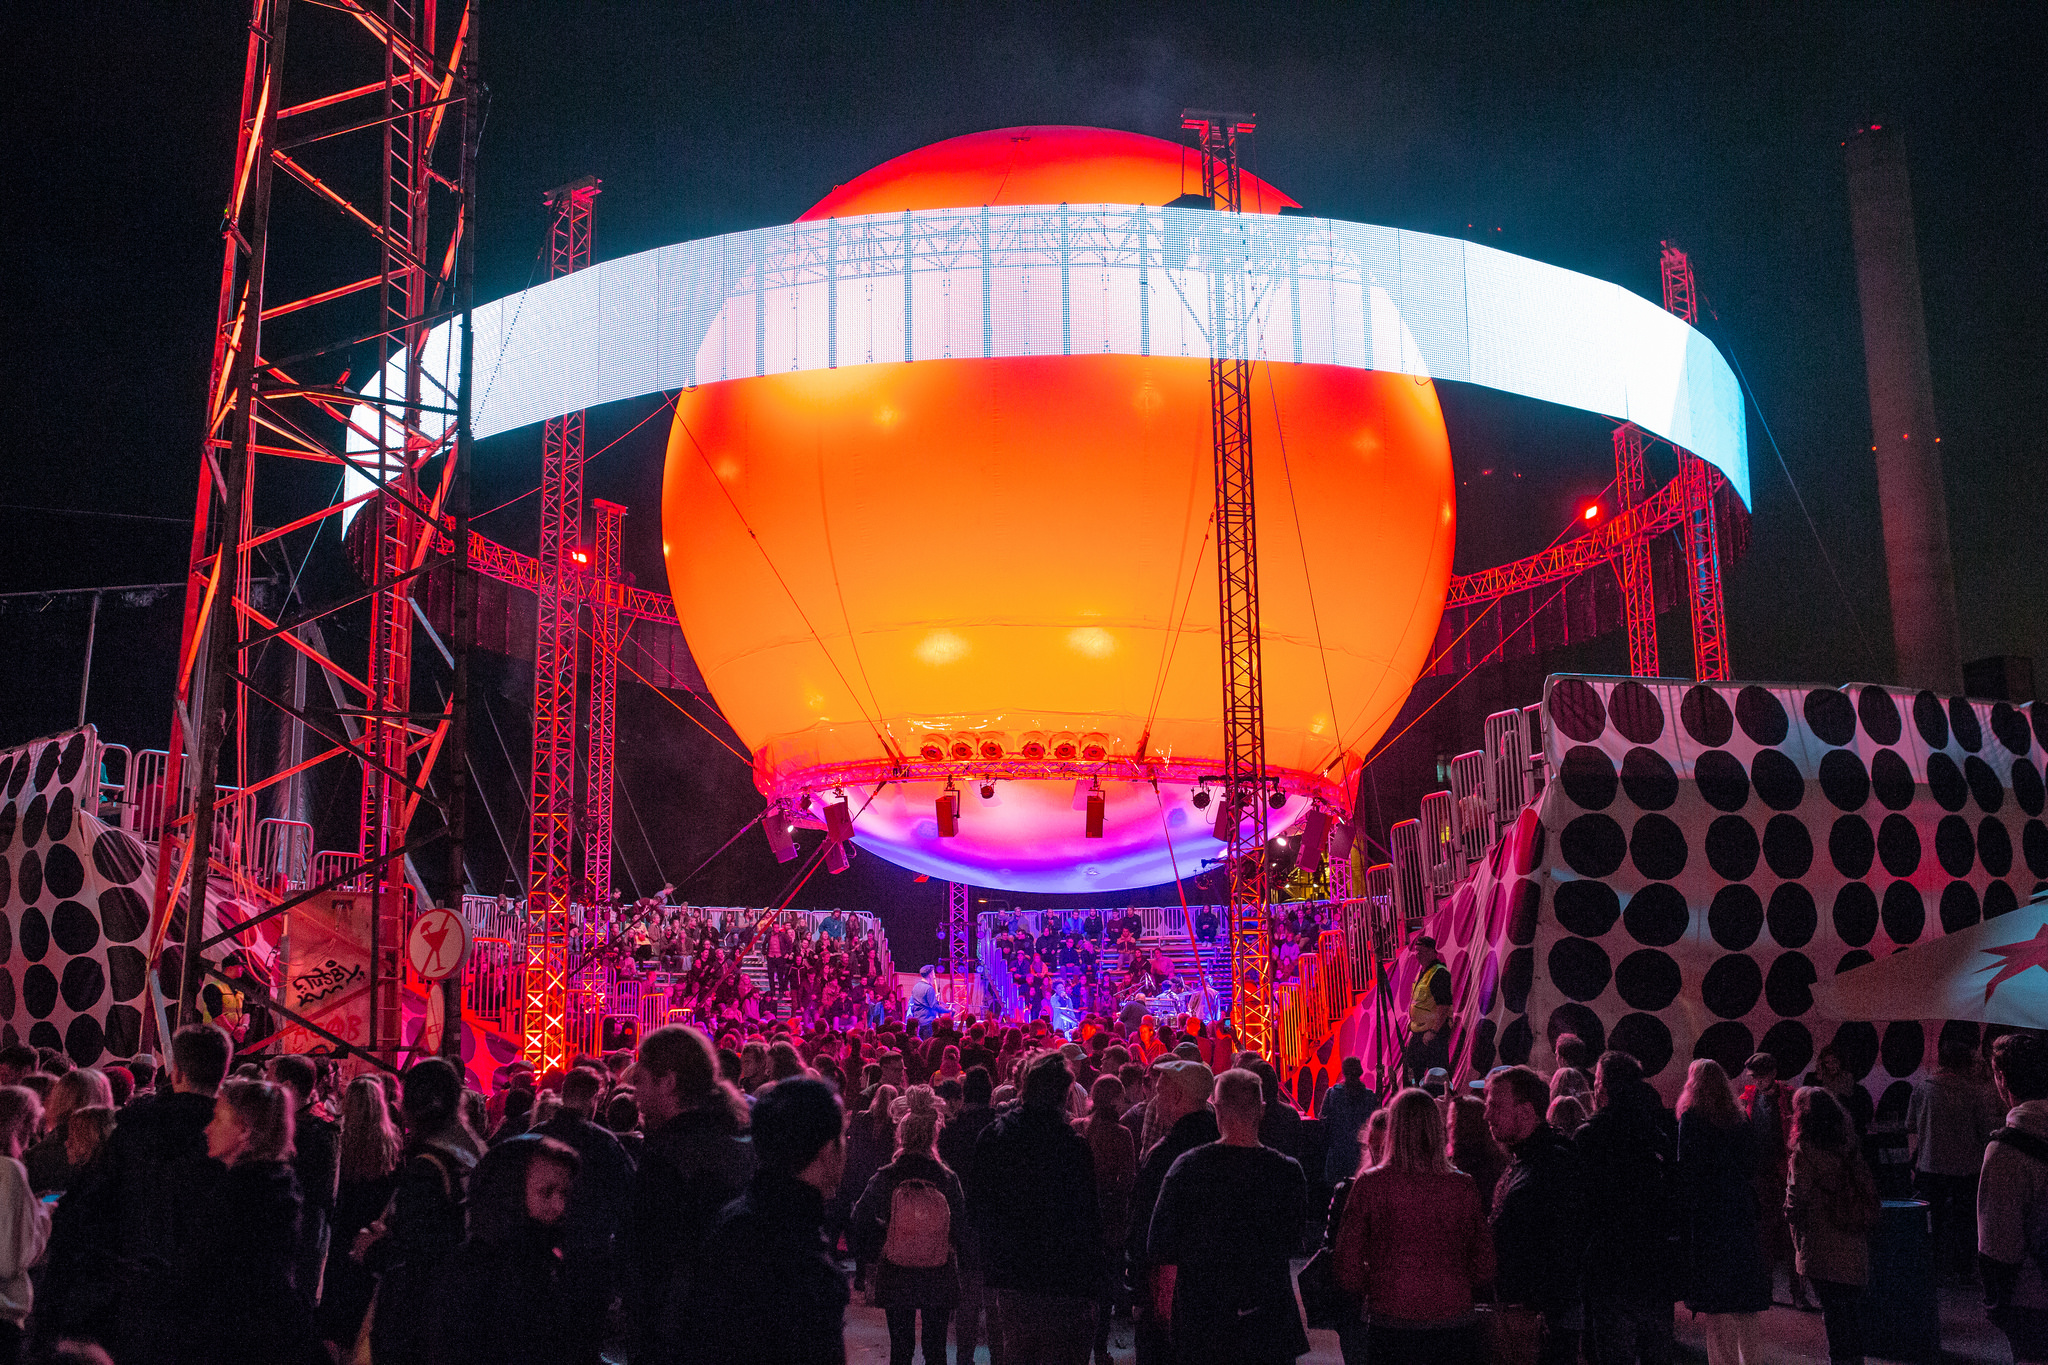 Flow Balloon stage